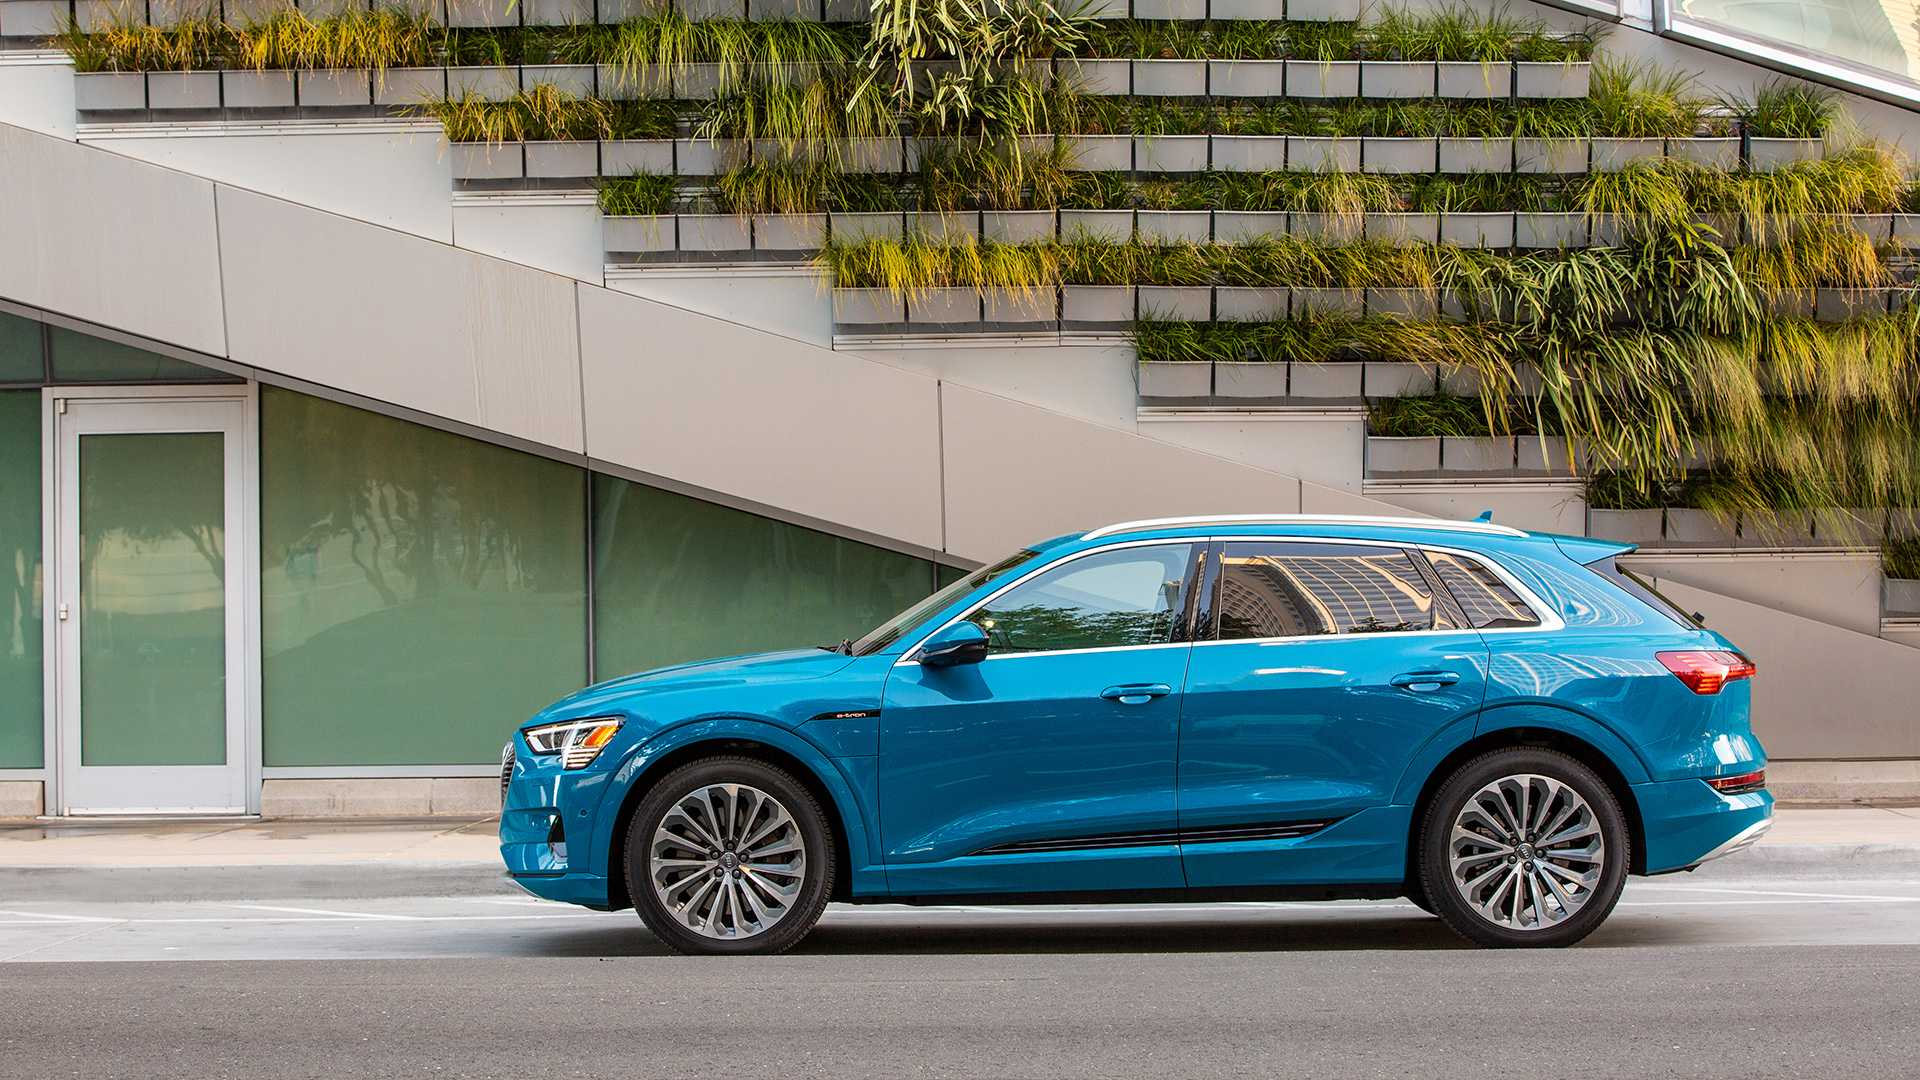 Audi e-tron To Be Launched In India This Year